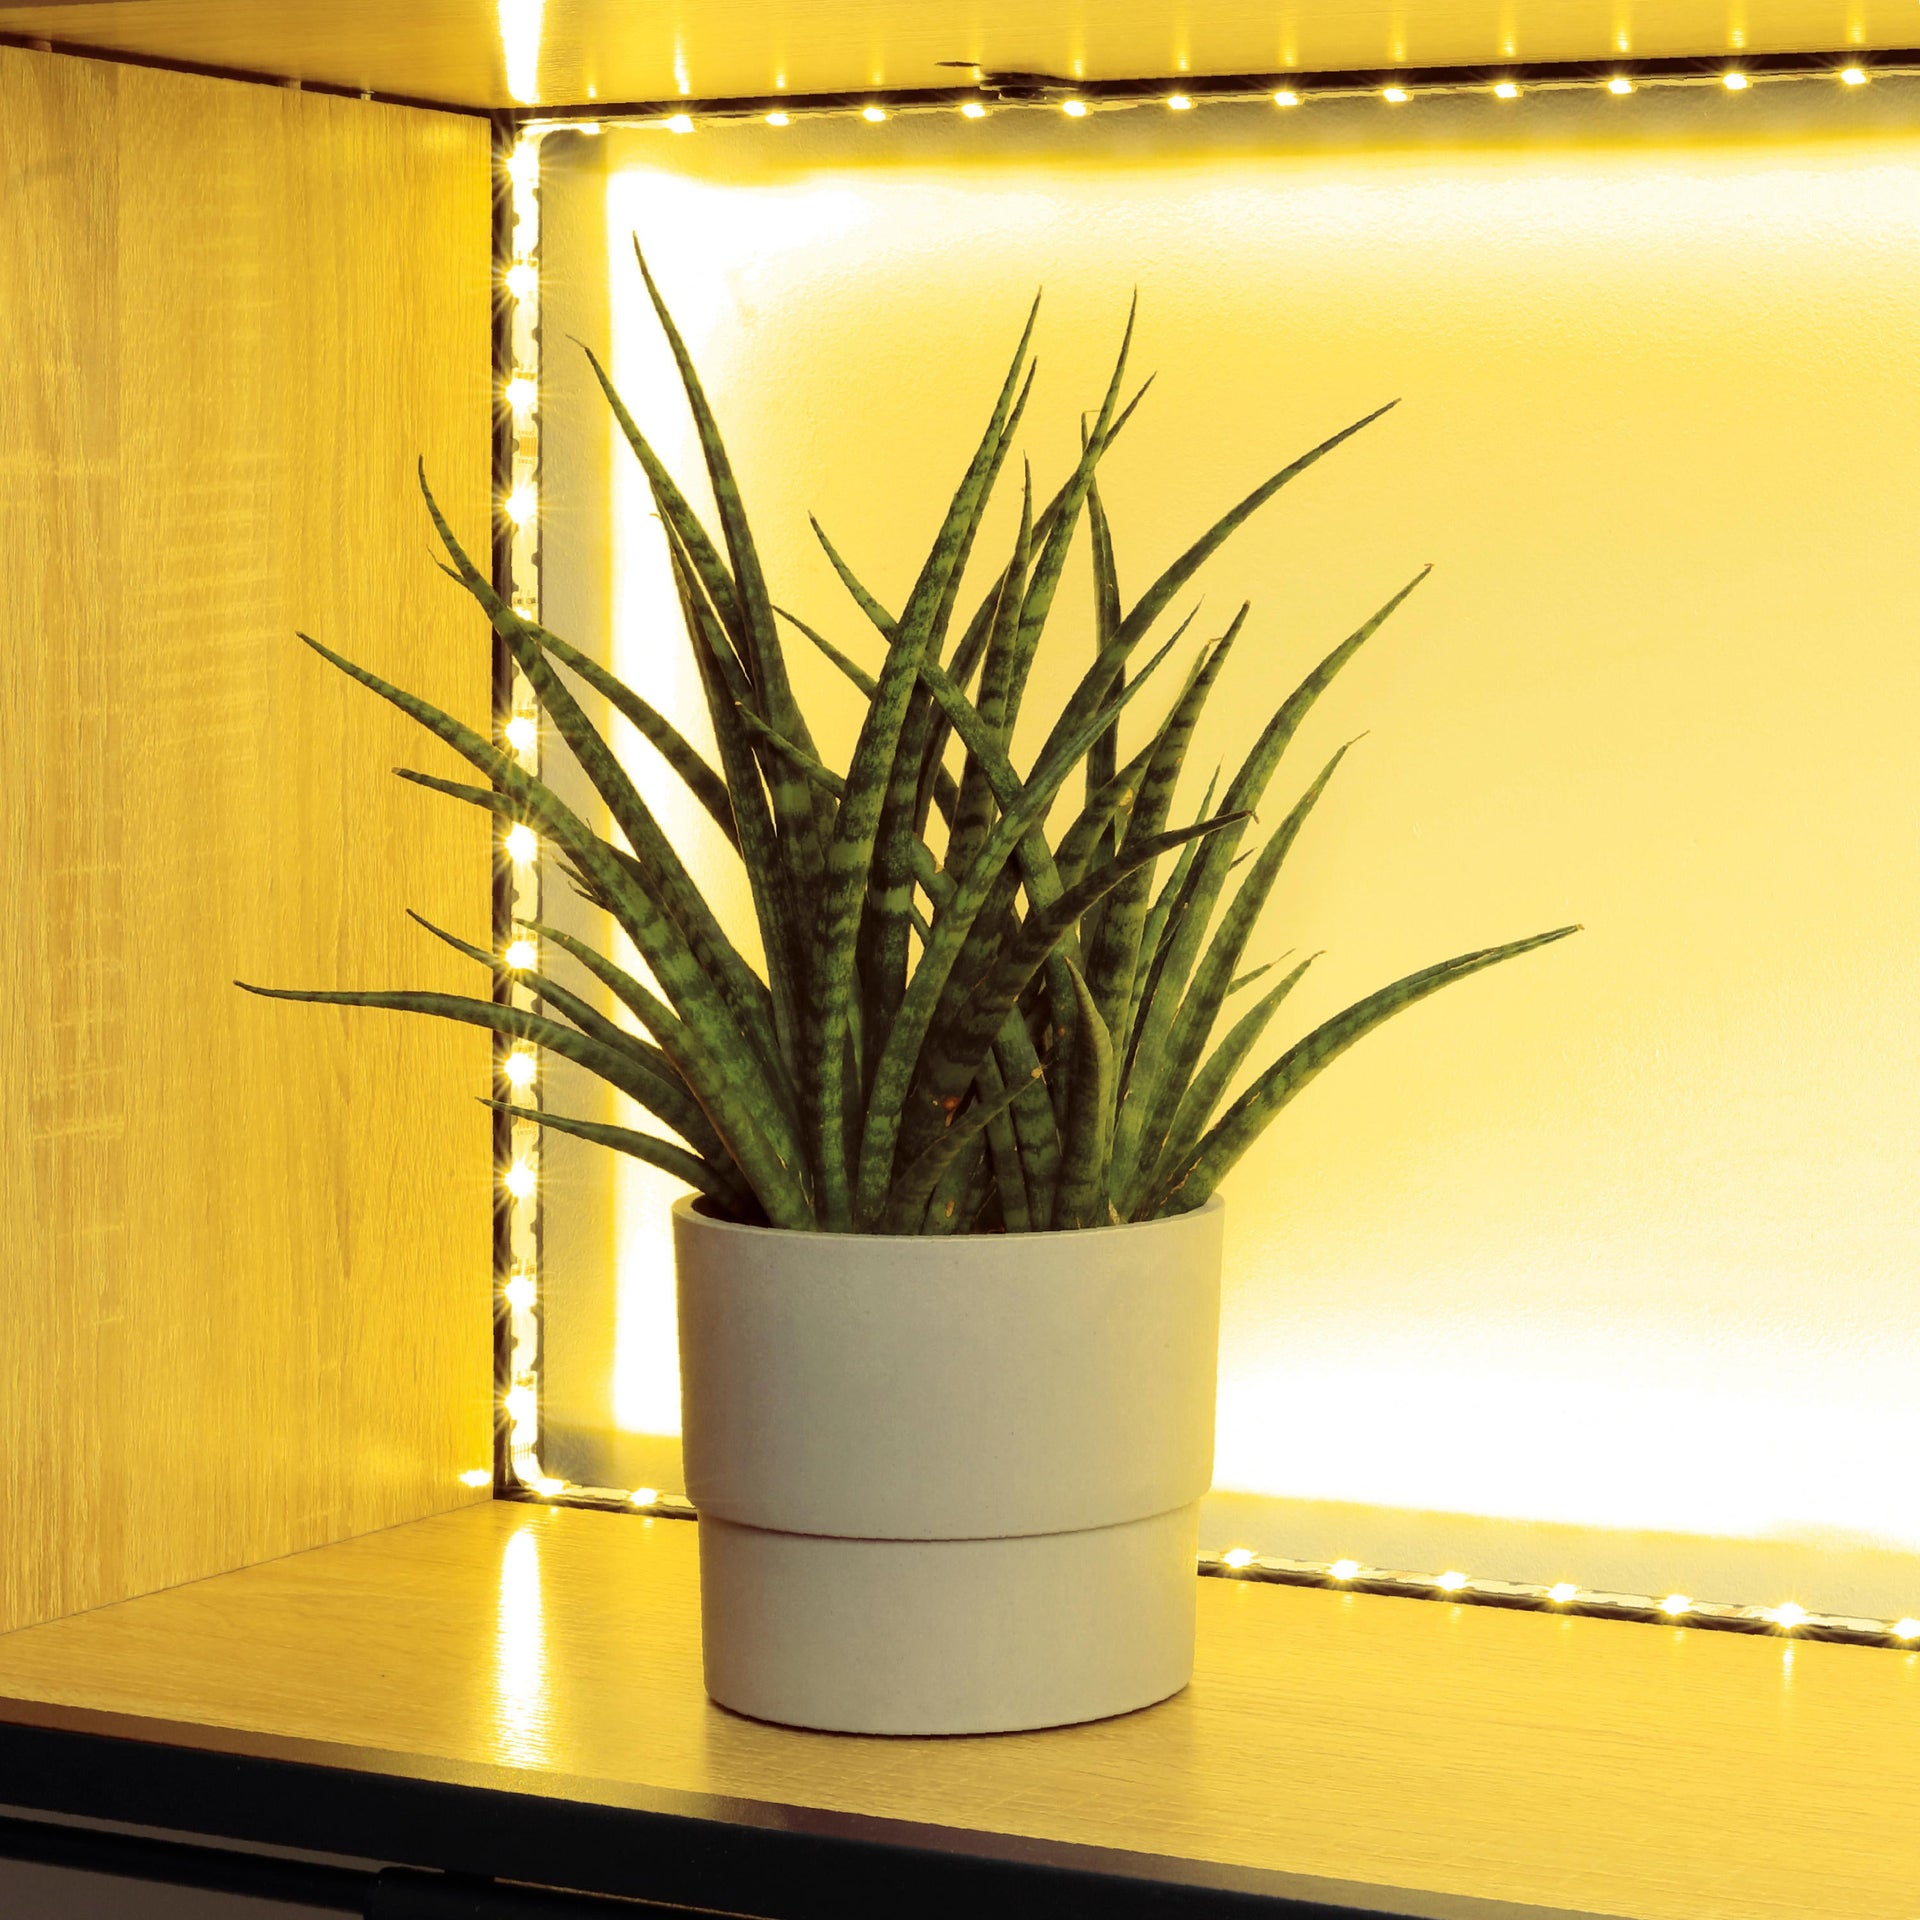 Striscia led Movaled 5m luce colore cangiante<multisep/>bianco 240LM IP20 INSPIRE - 11